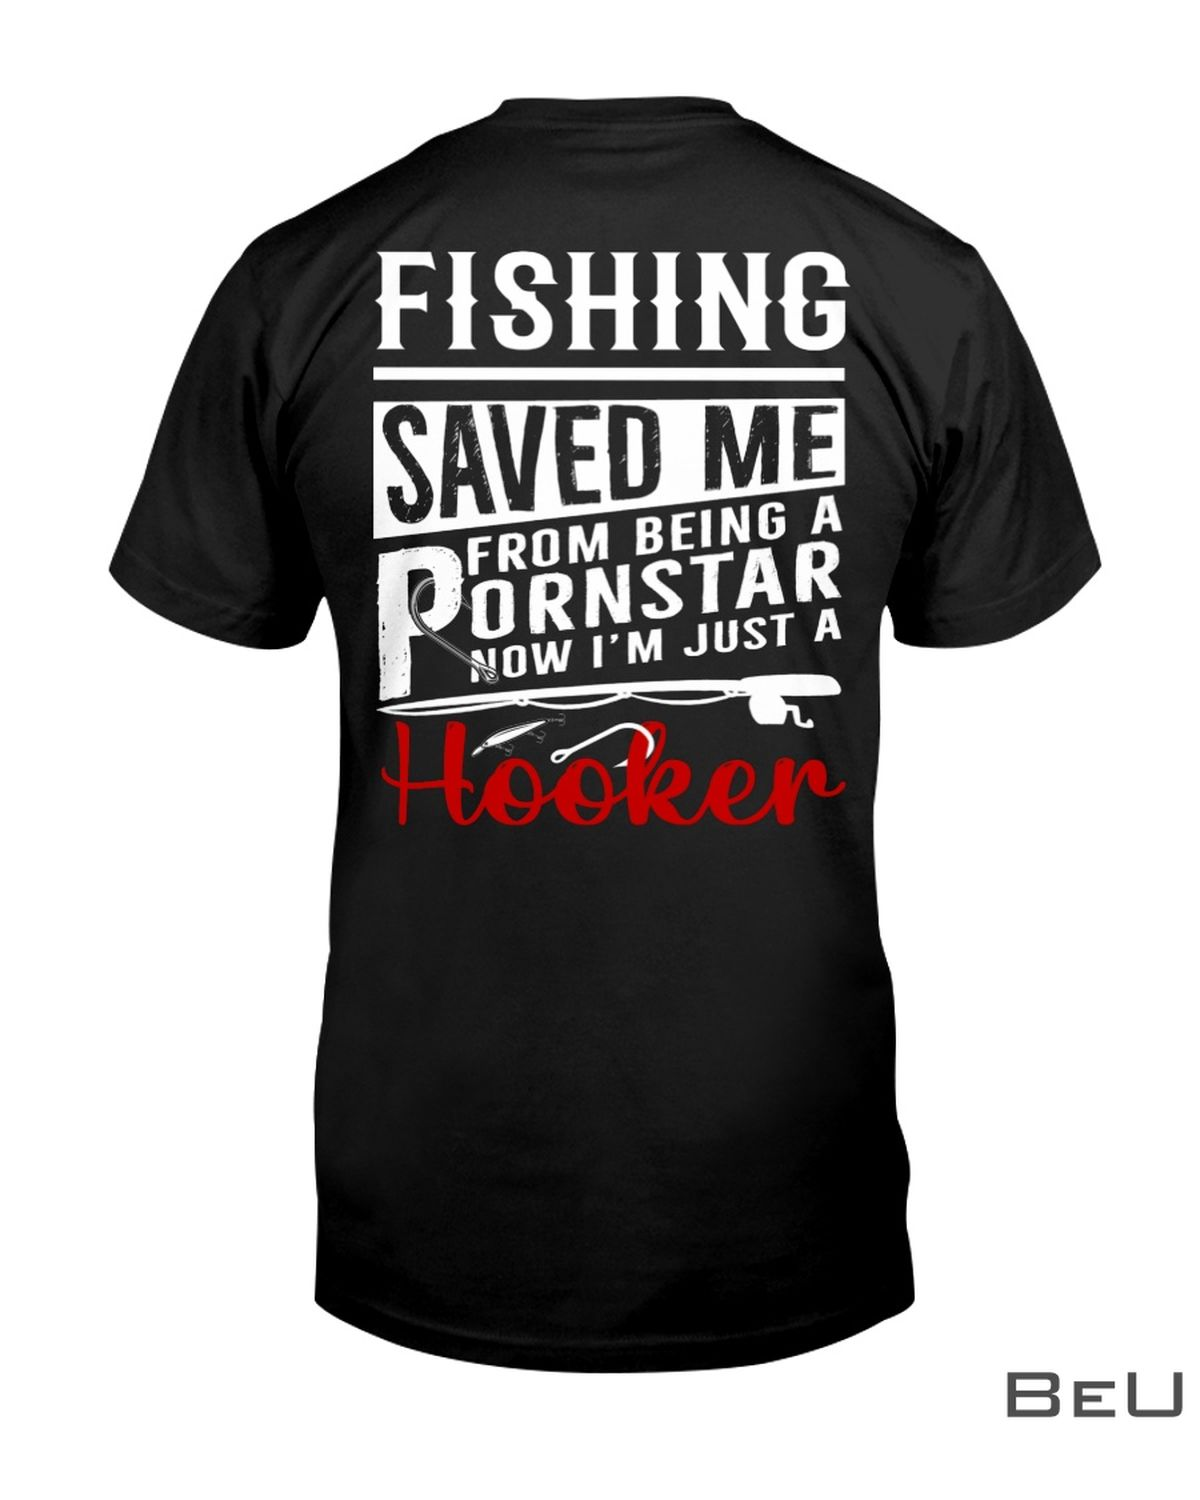 Fishing saved me from being a pornstar now I'm just a hooker shirtc